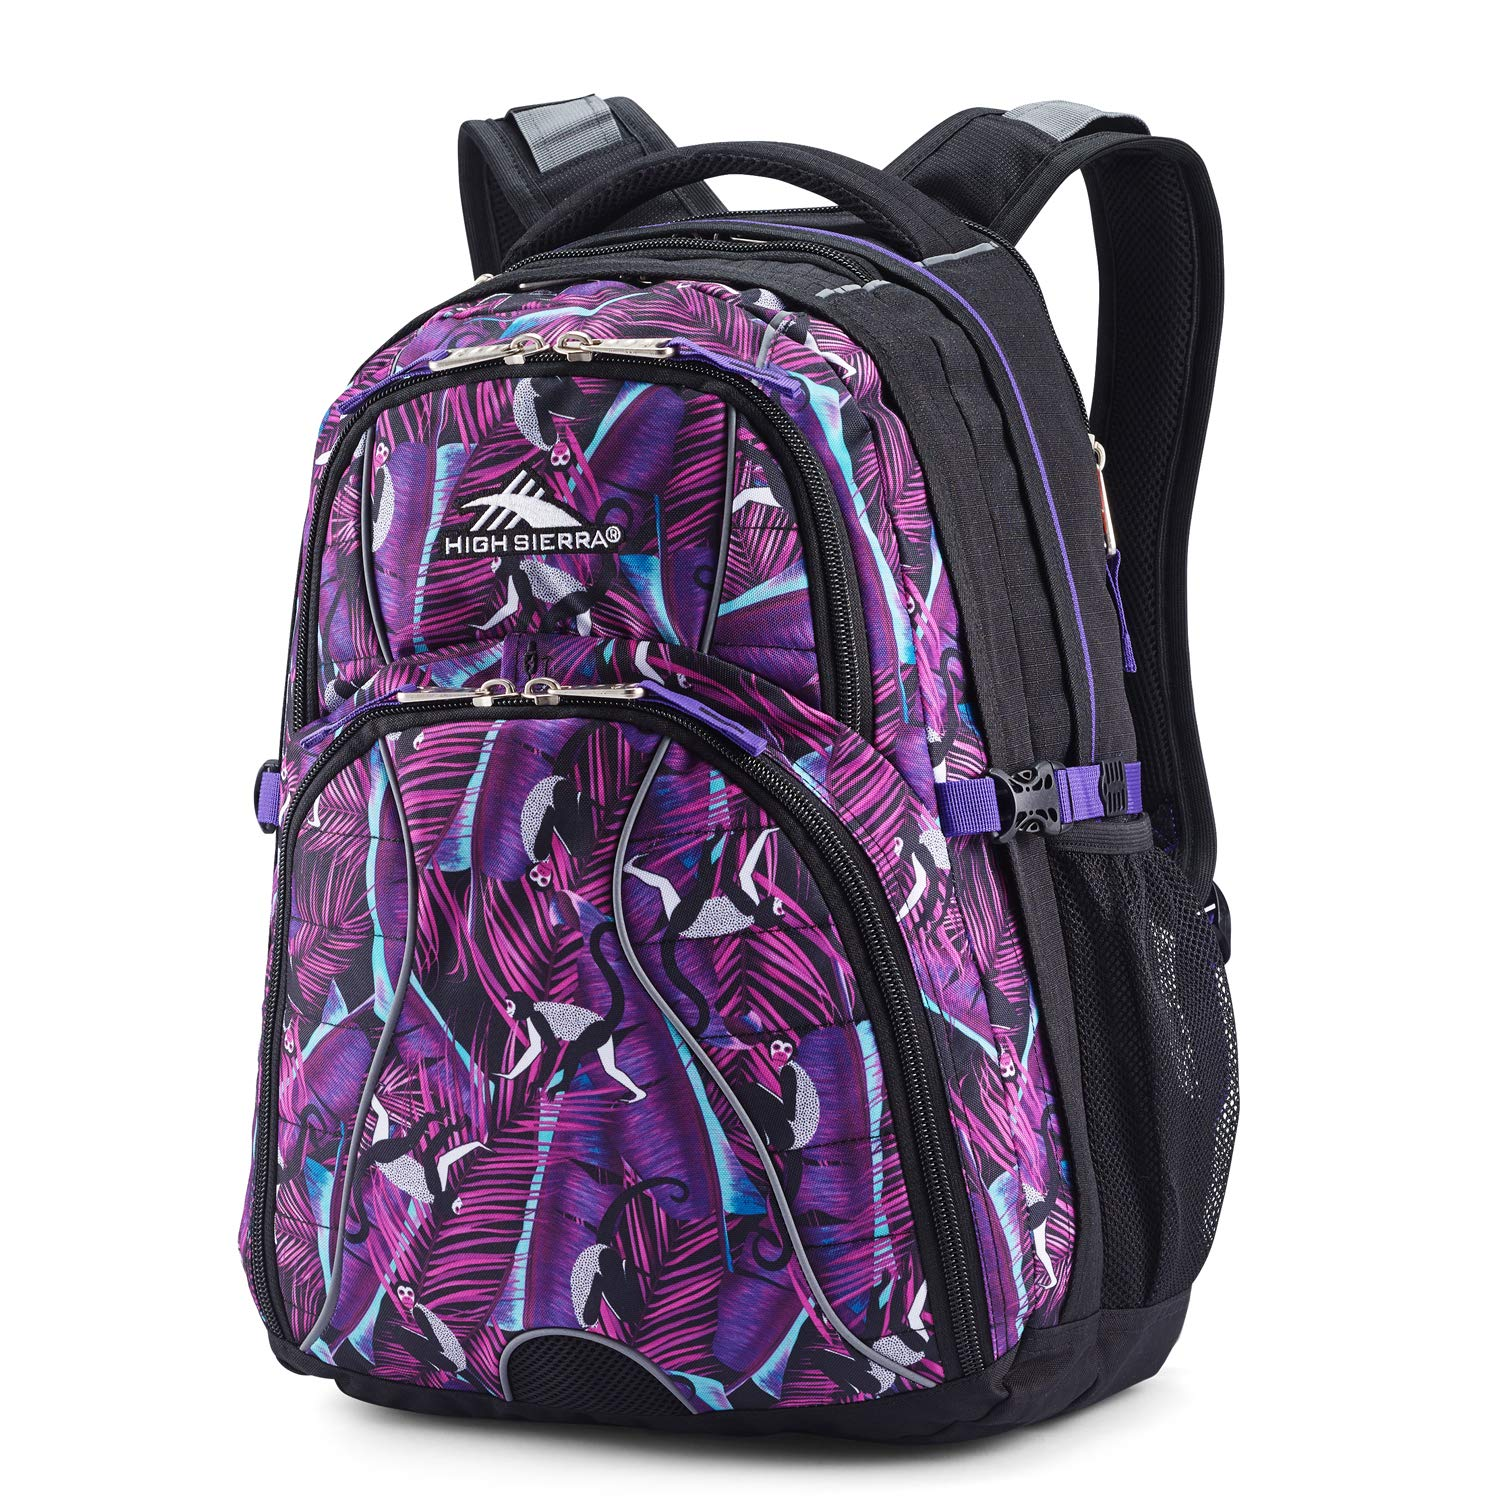 High Sierra Swerve Laptop Backpack, 17-inch Laptop Backpack for High School or College, Ideal Gaming Laptop Backpack by High Sierra